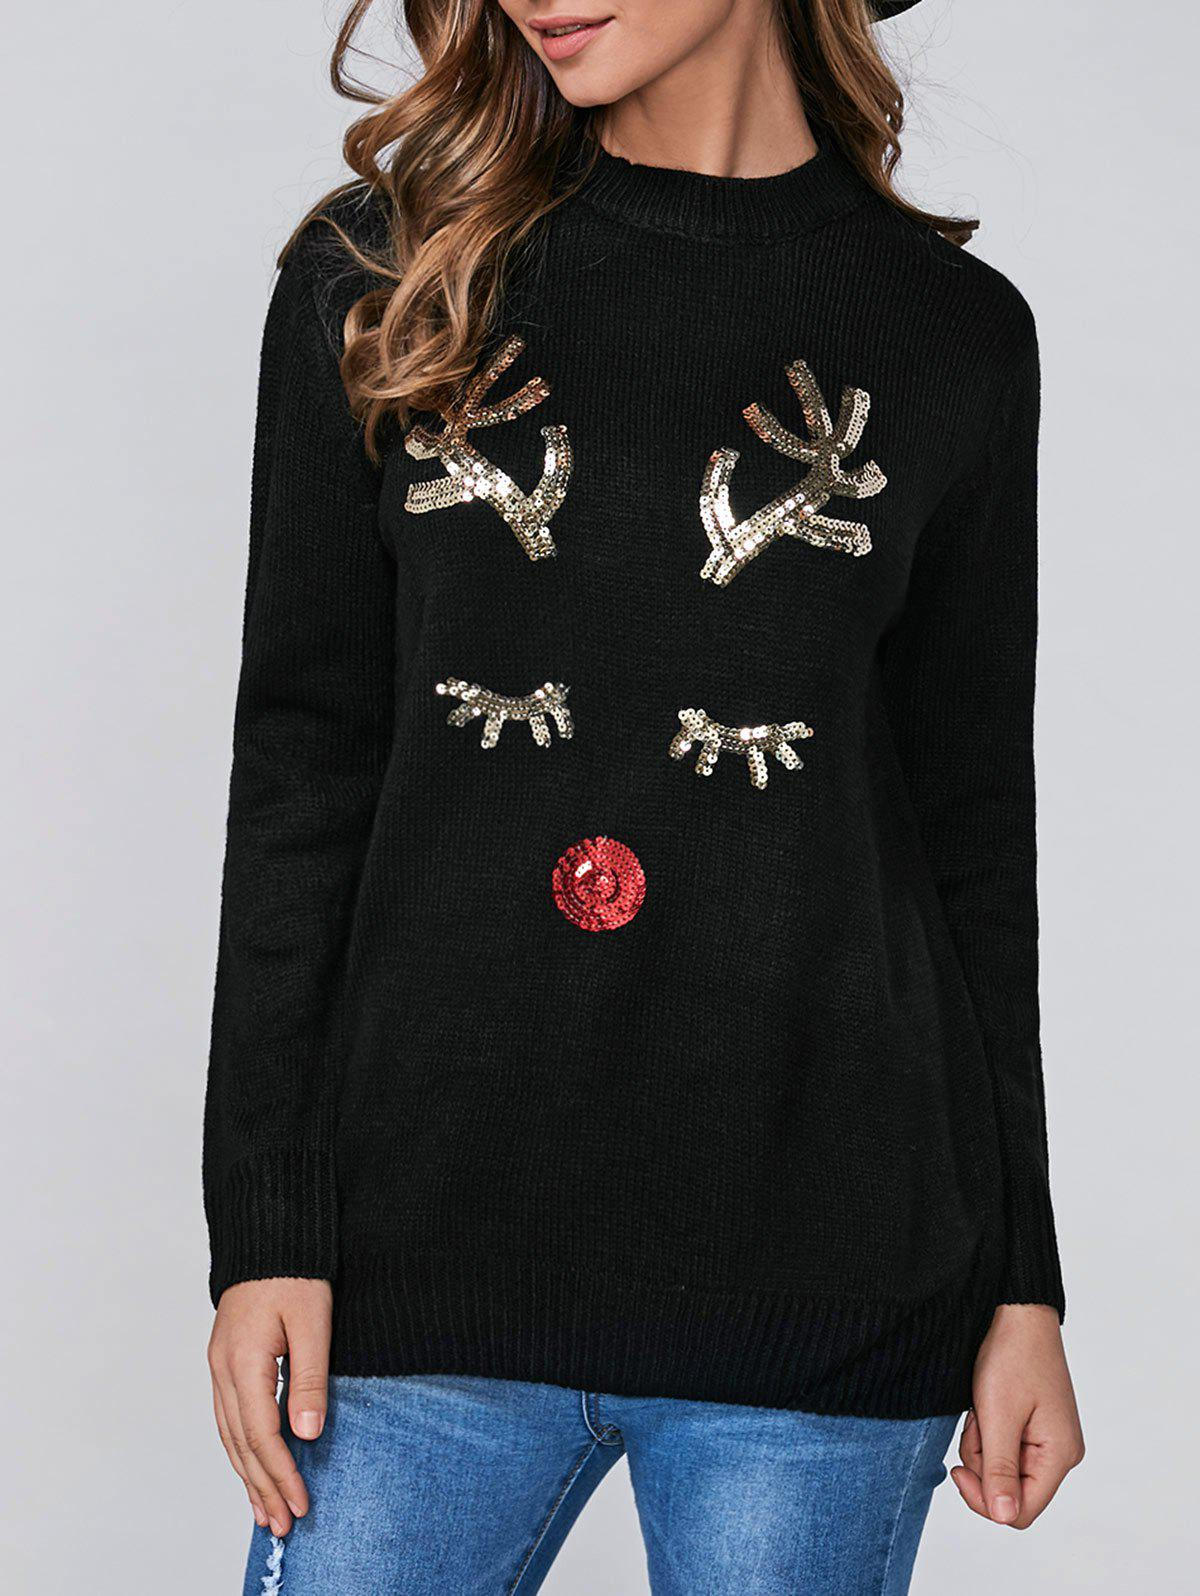 Christmas Sequins Deer Pullover SweaterWOMEN<br><br>Size: ONE SIZE; Color: BLACK; Type: Pullovers; Material: Polyester; Sleeve Length: Full; Collar: Round Neck; Style: Fashion; Pattern Type: Animal; Season: Fall,Spring,Winter; Weight: 0.450kg; Package Contents: 1 x Sweater;